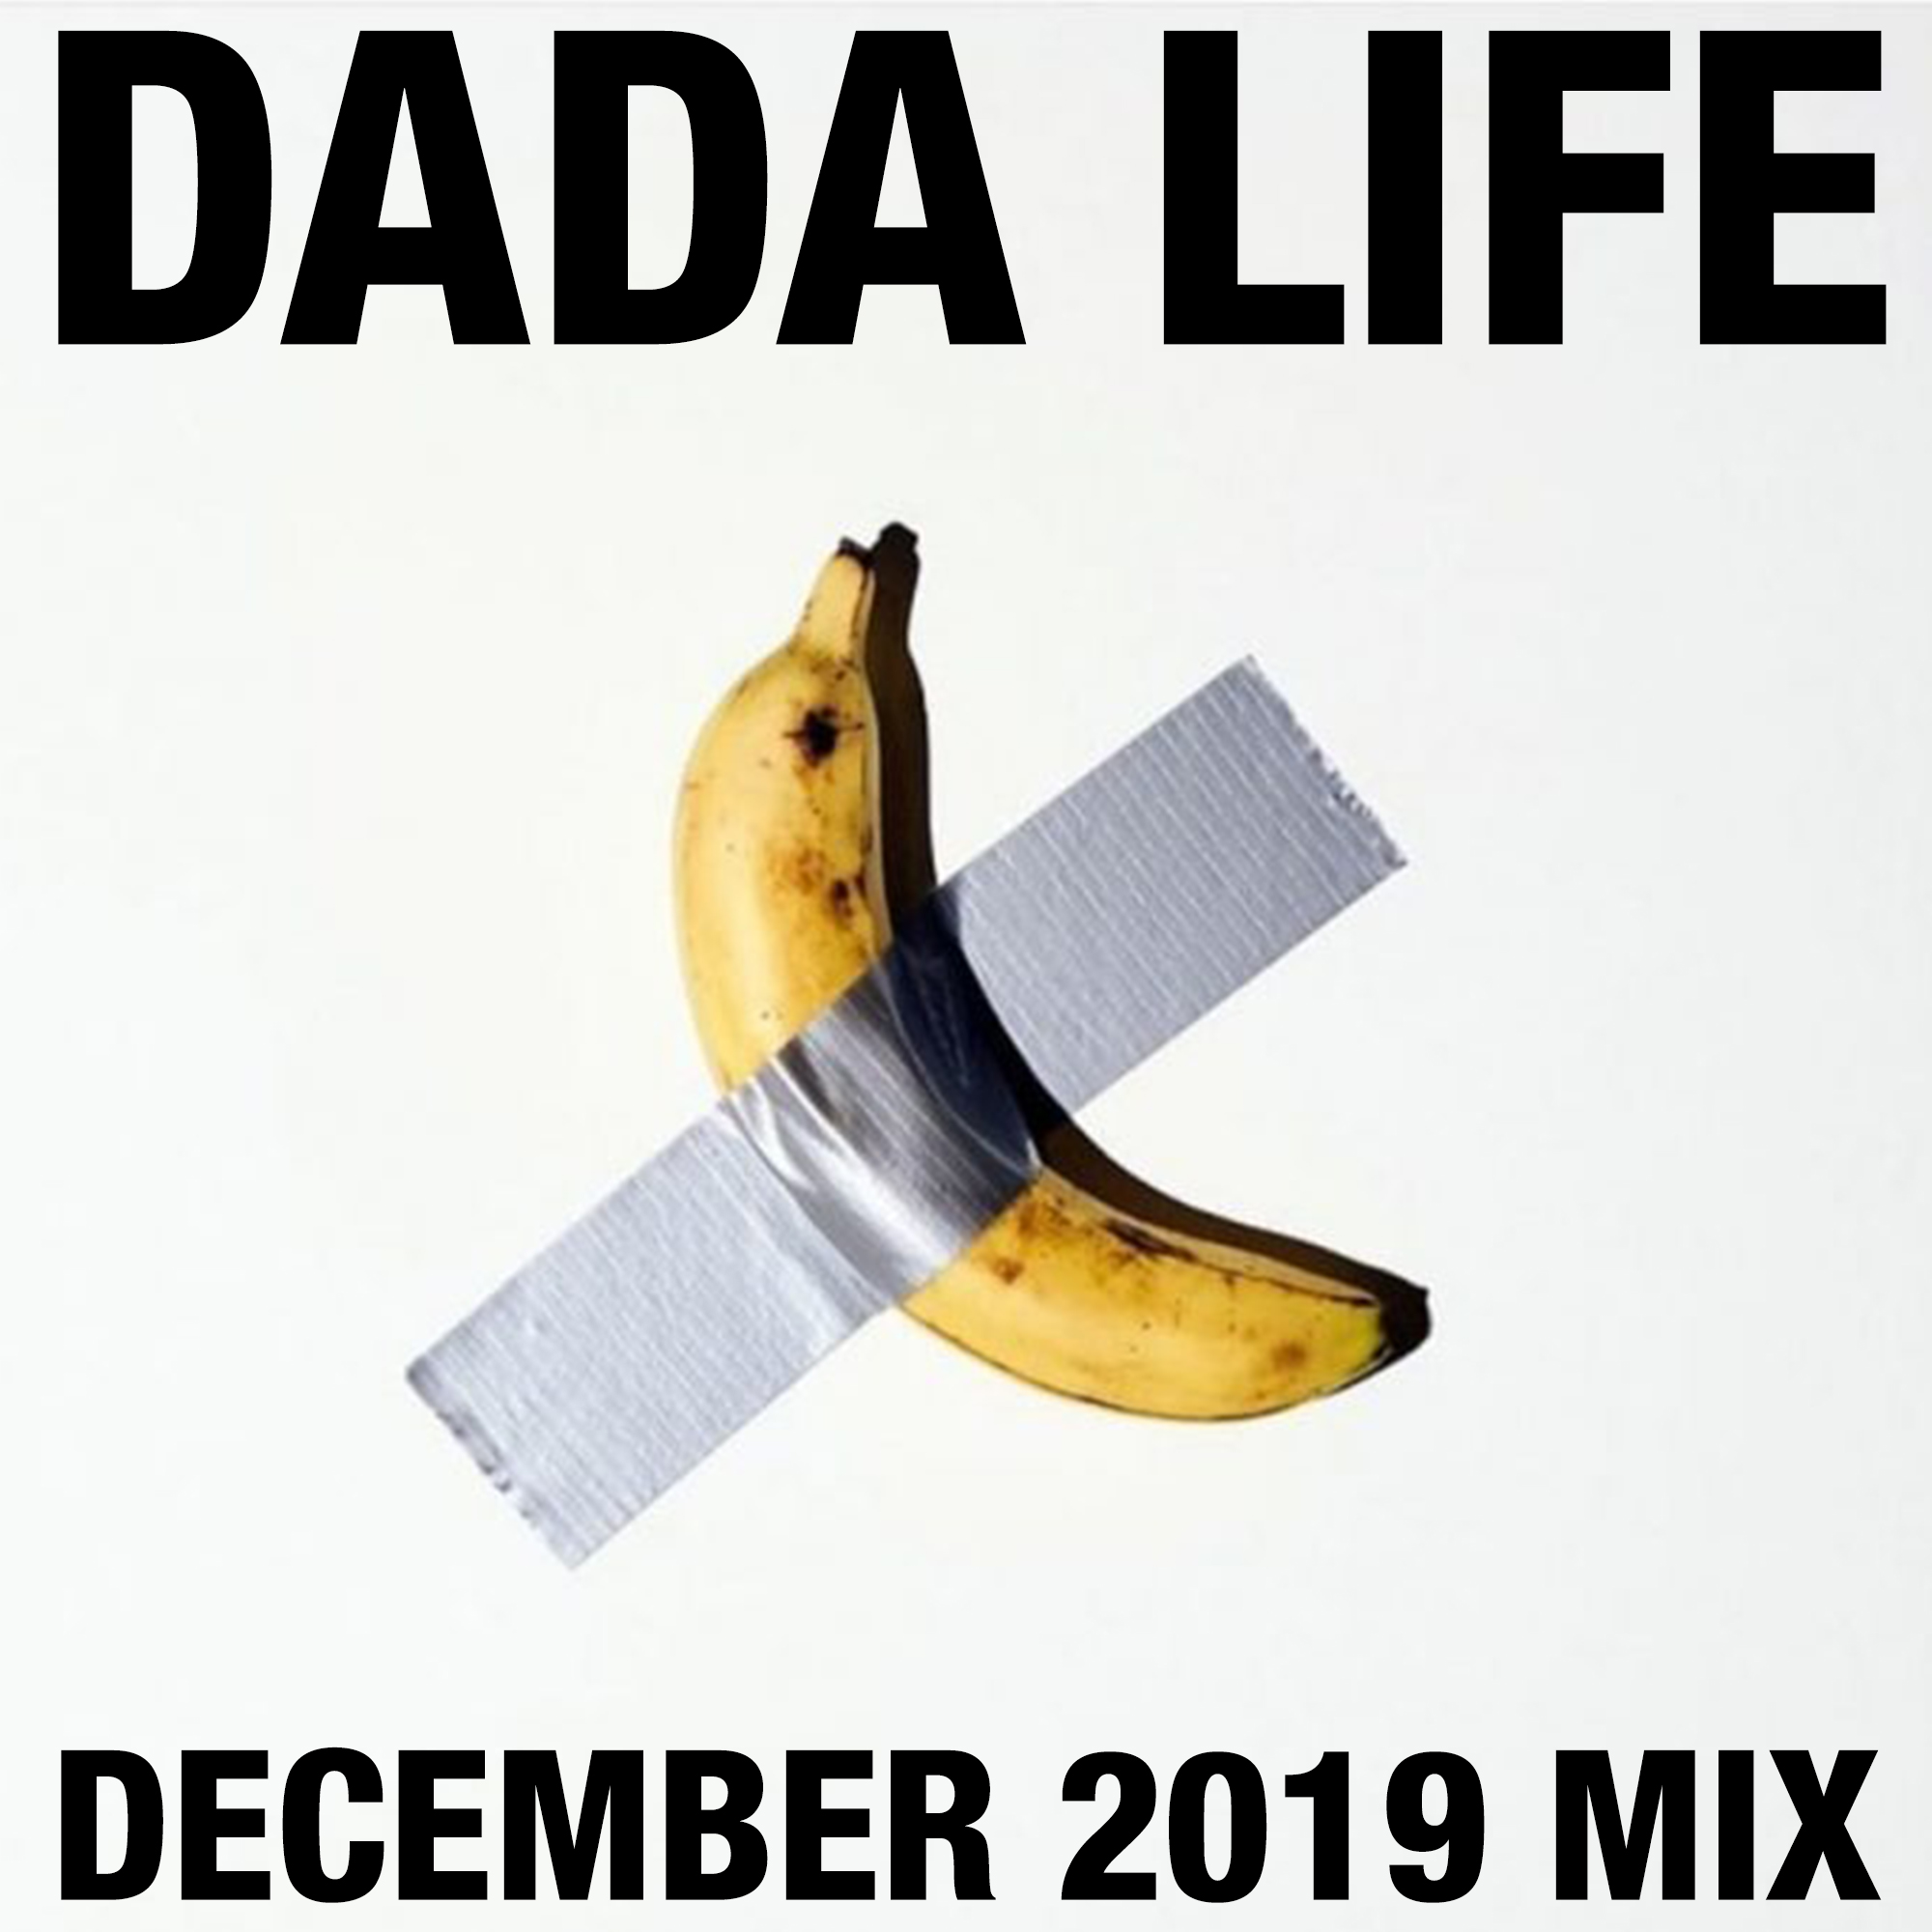 Dada Land December 2019 Mix show art